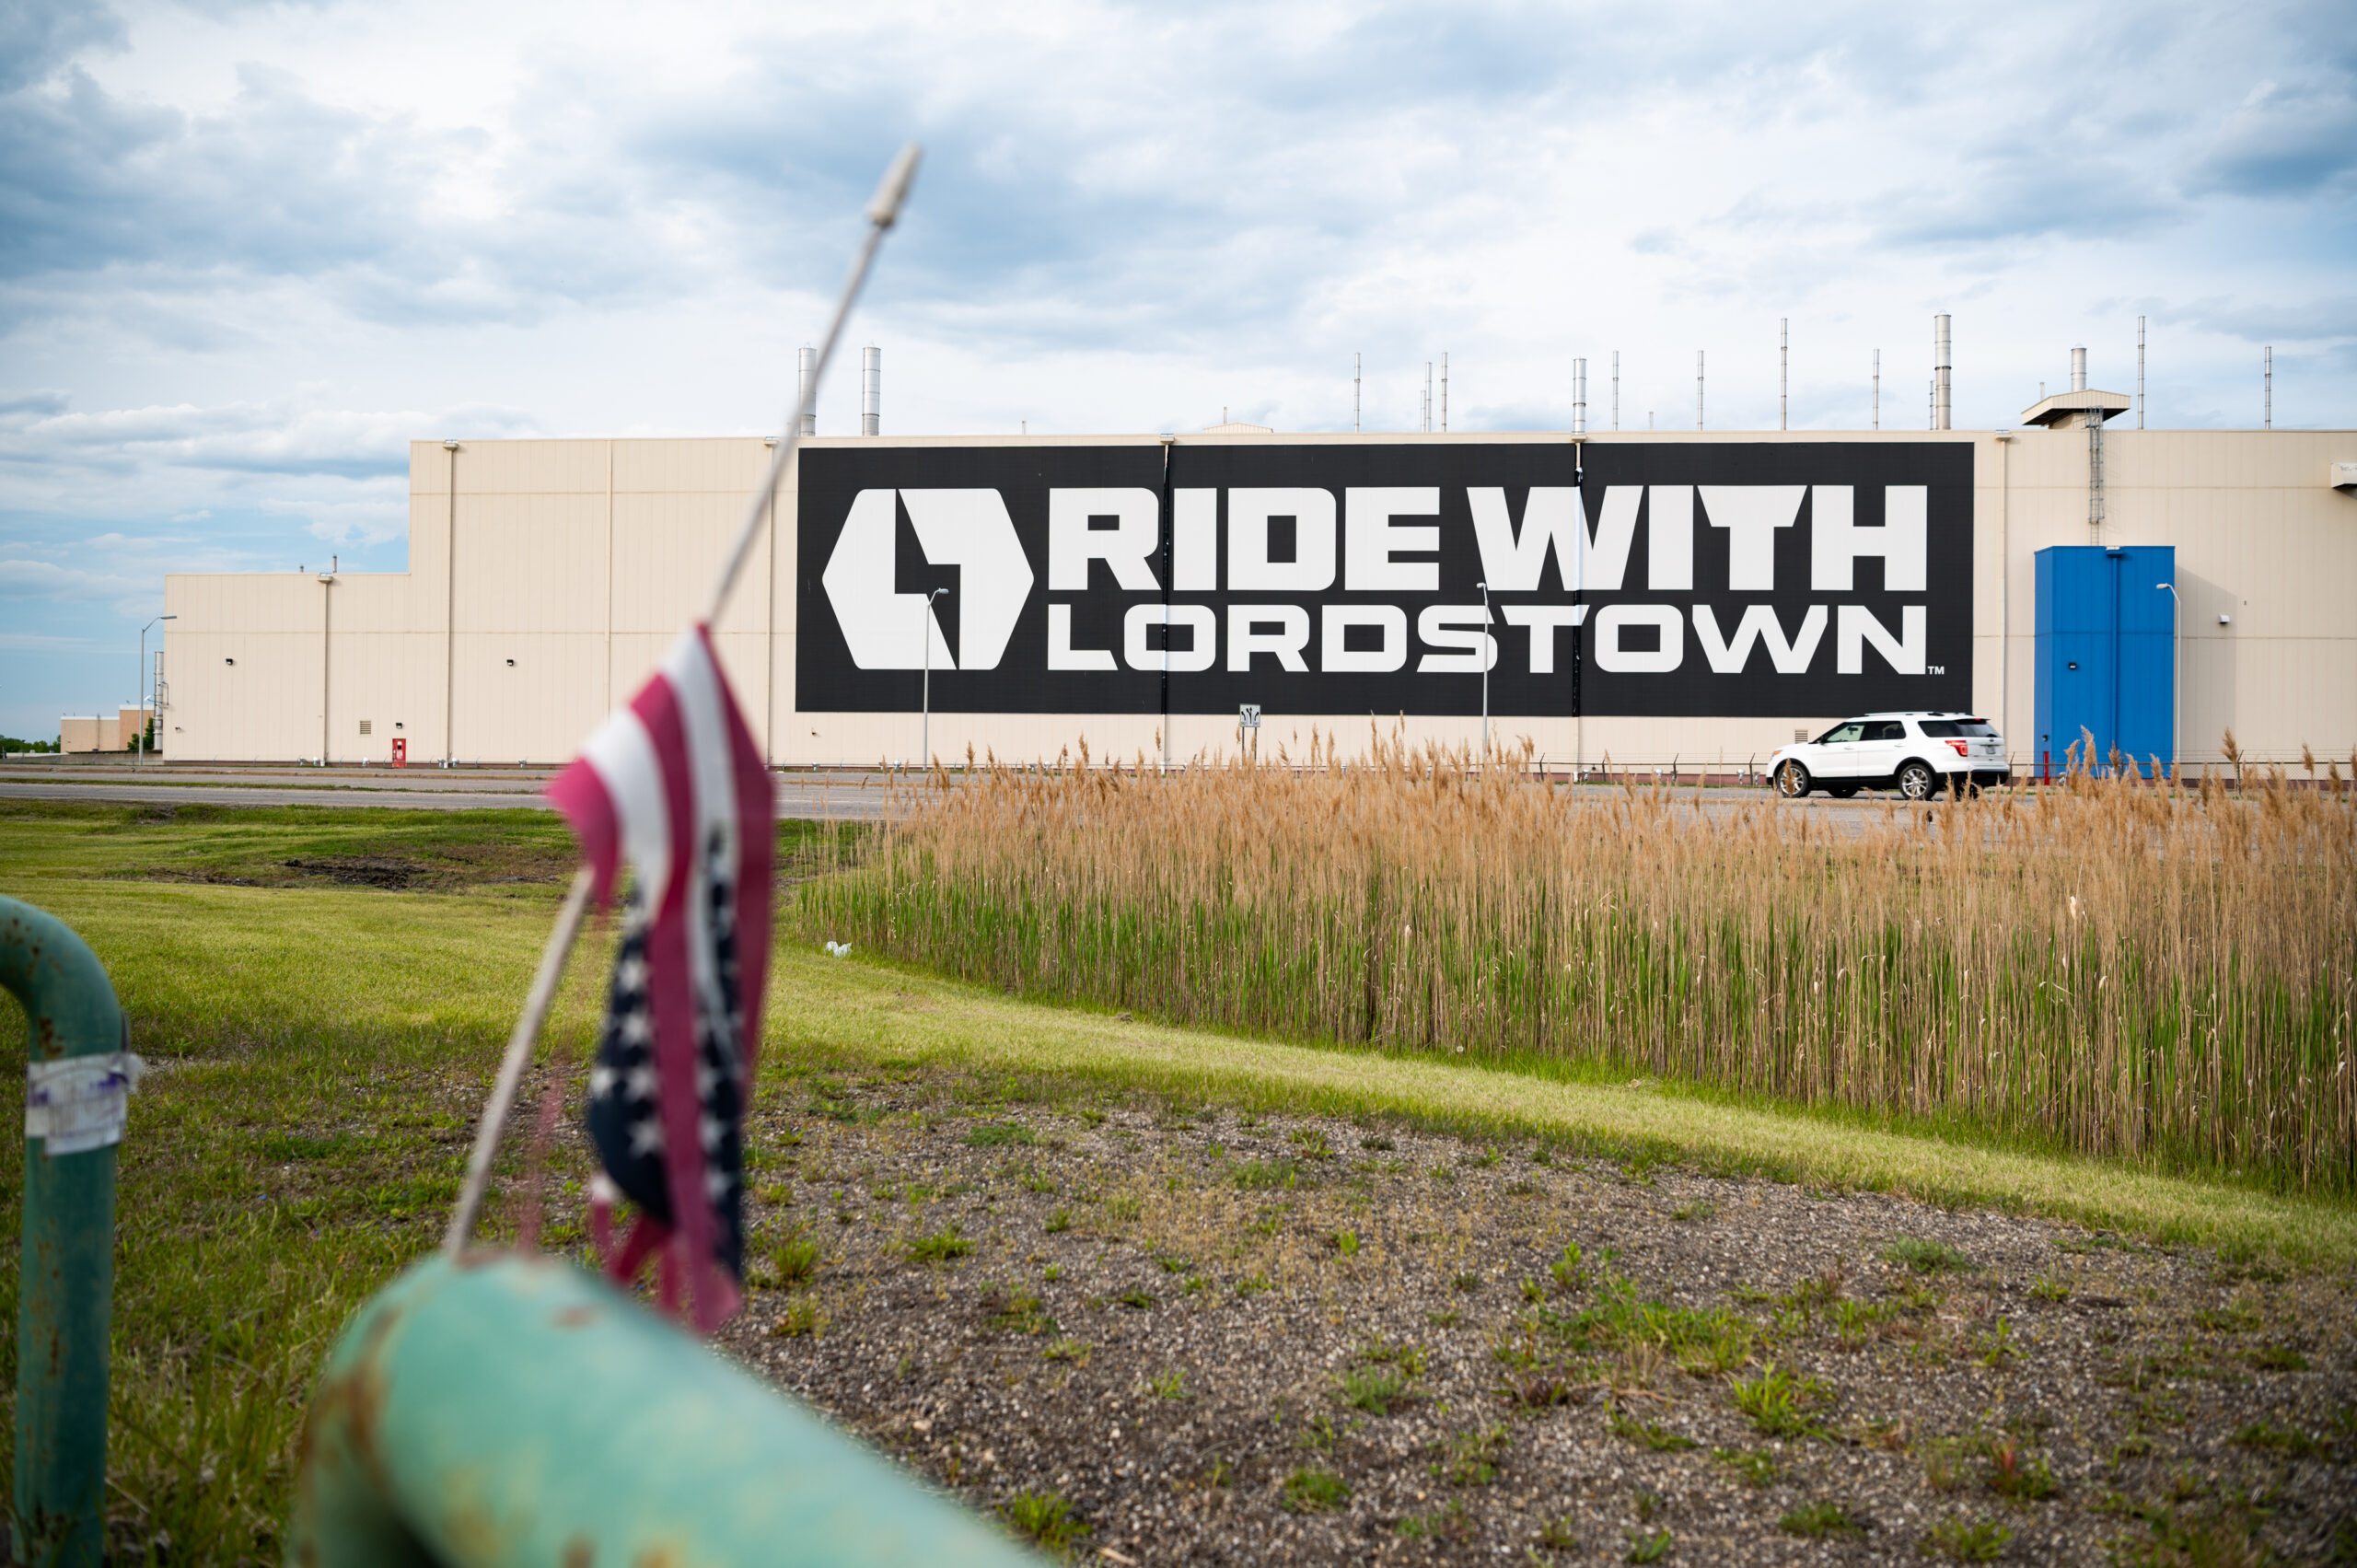 Signage outside Lordstown Motors Corp. headquarters in Lordstown, Ohio, on May 15, 2021. Credit: Dustin Franz/Bloomberg via Getty Images